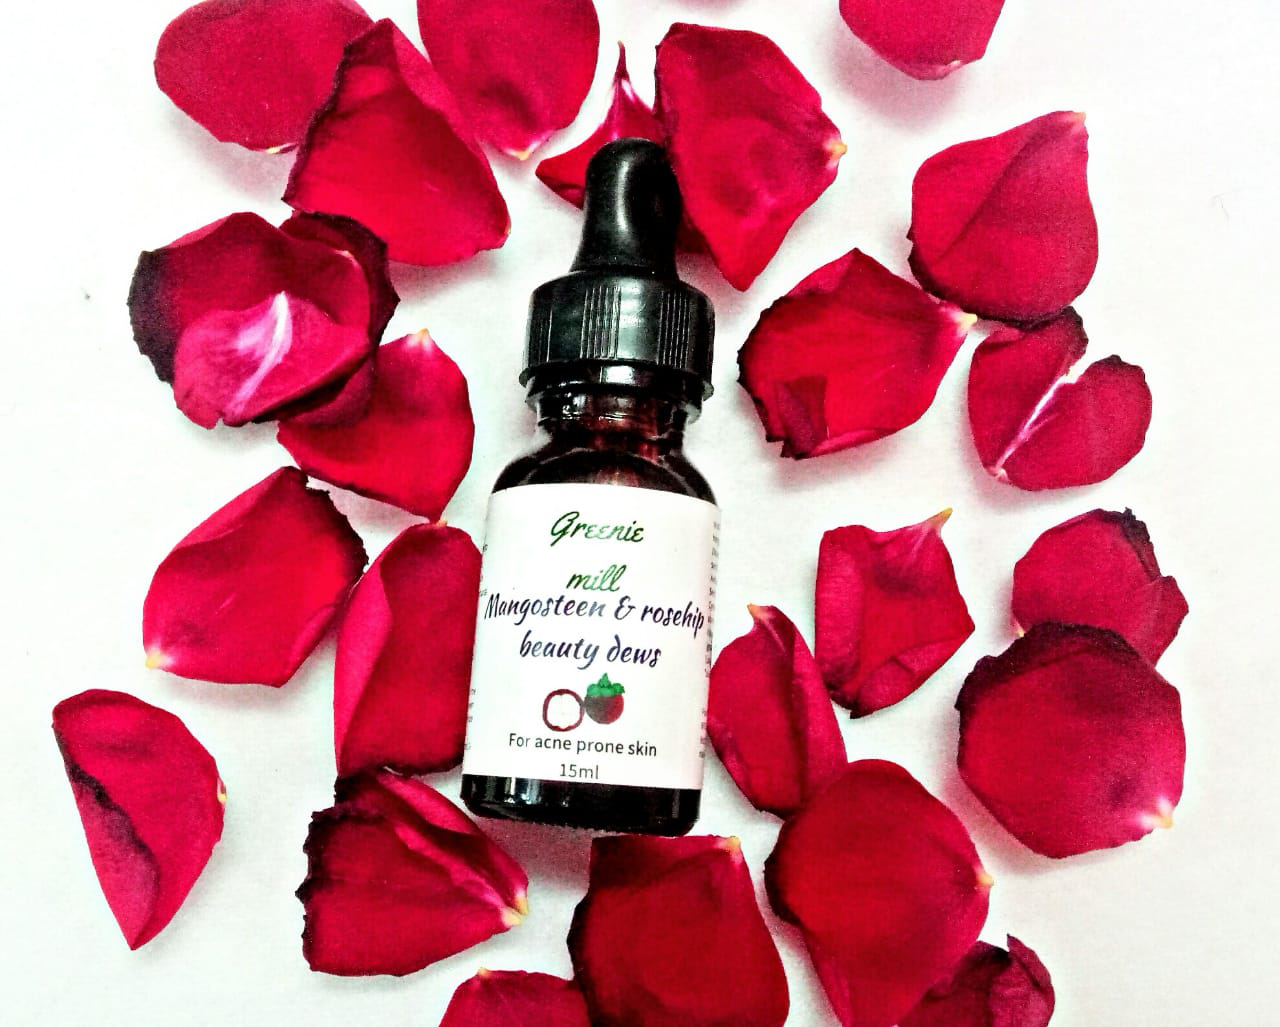 Face serum, healthy, radiant glow, skin care